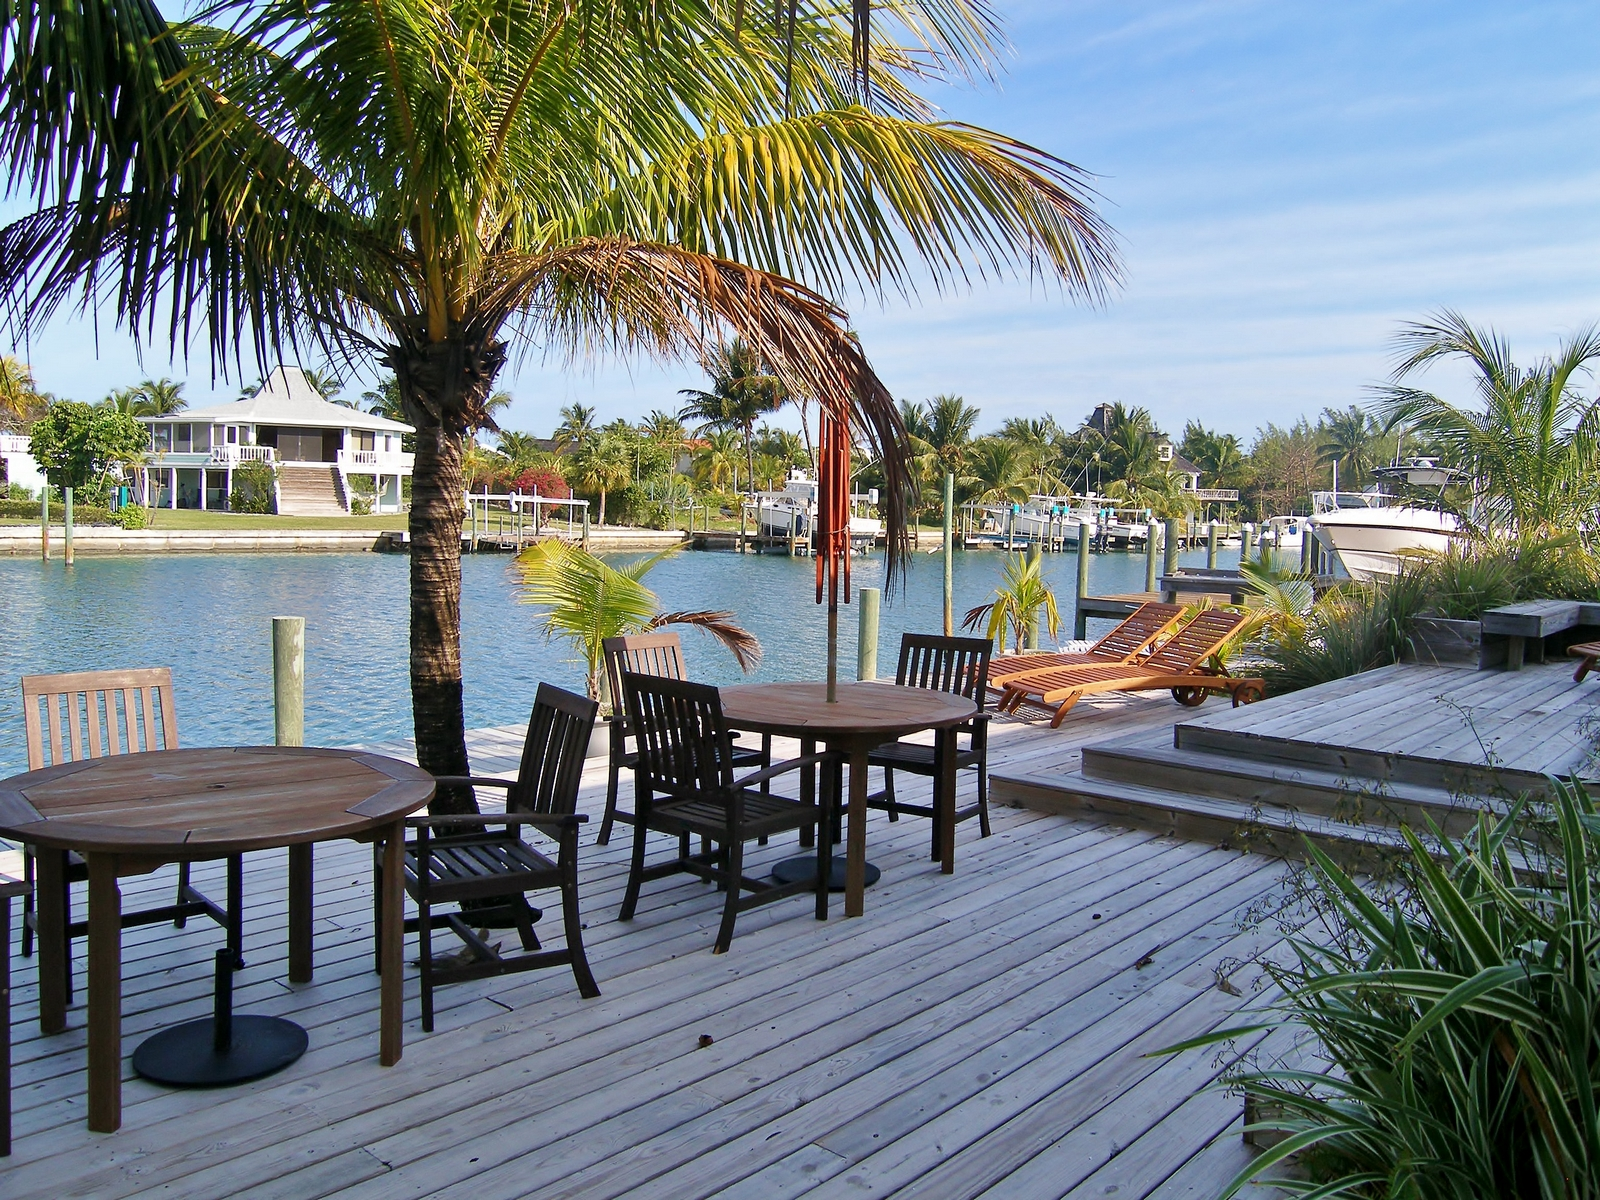 Single Family Home for Sale at Blue Fin House Brigantine Bay, Treasure Cay, Abaco Bahamas